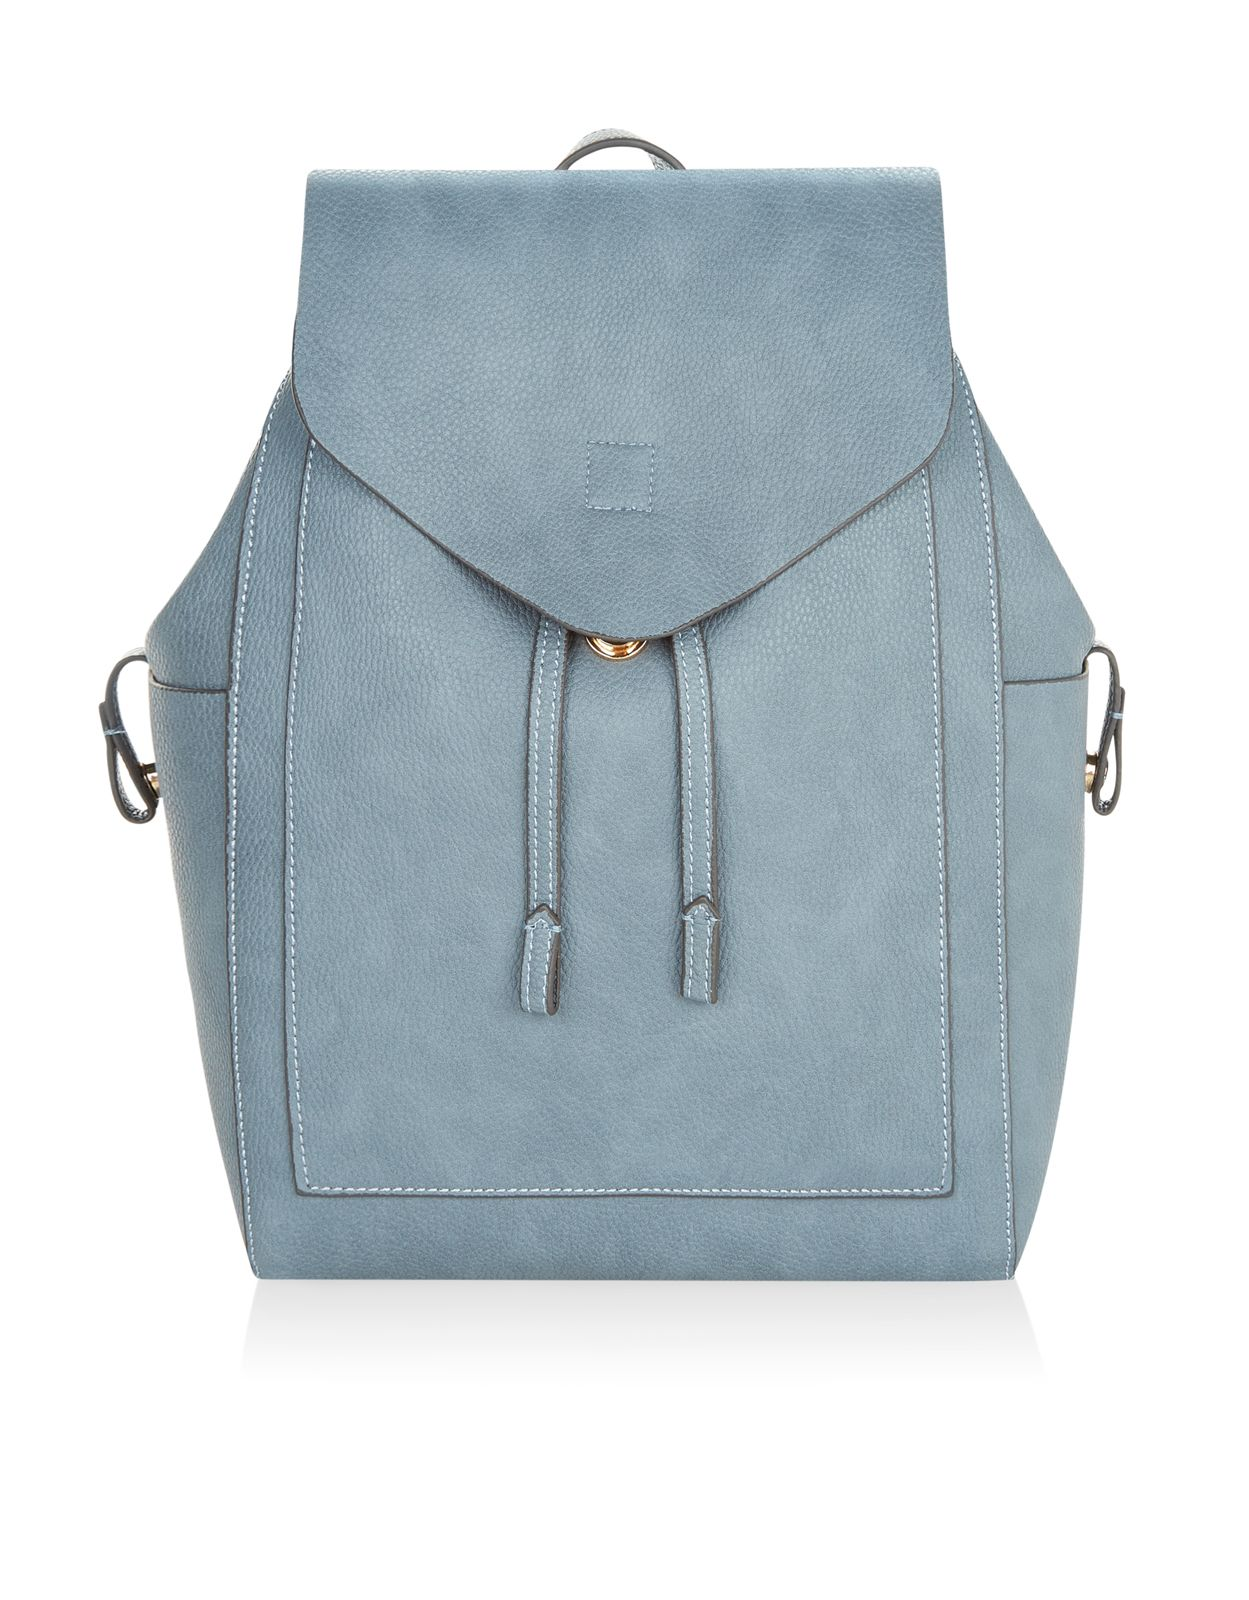 f7086f238 Accessorize   Nora Backpack   Blue   clothes • style   Bags, Bag ...